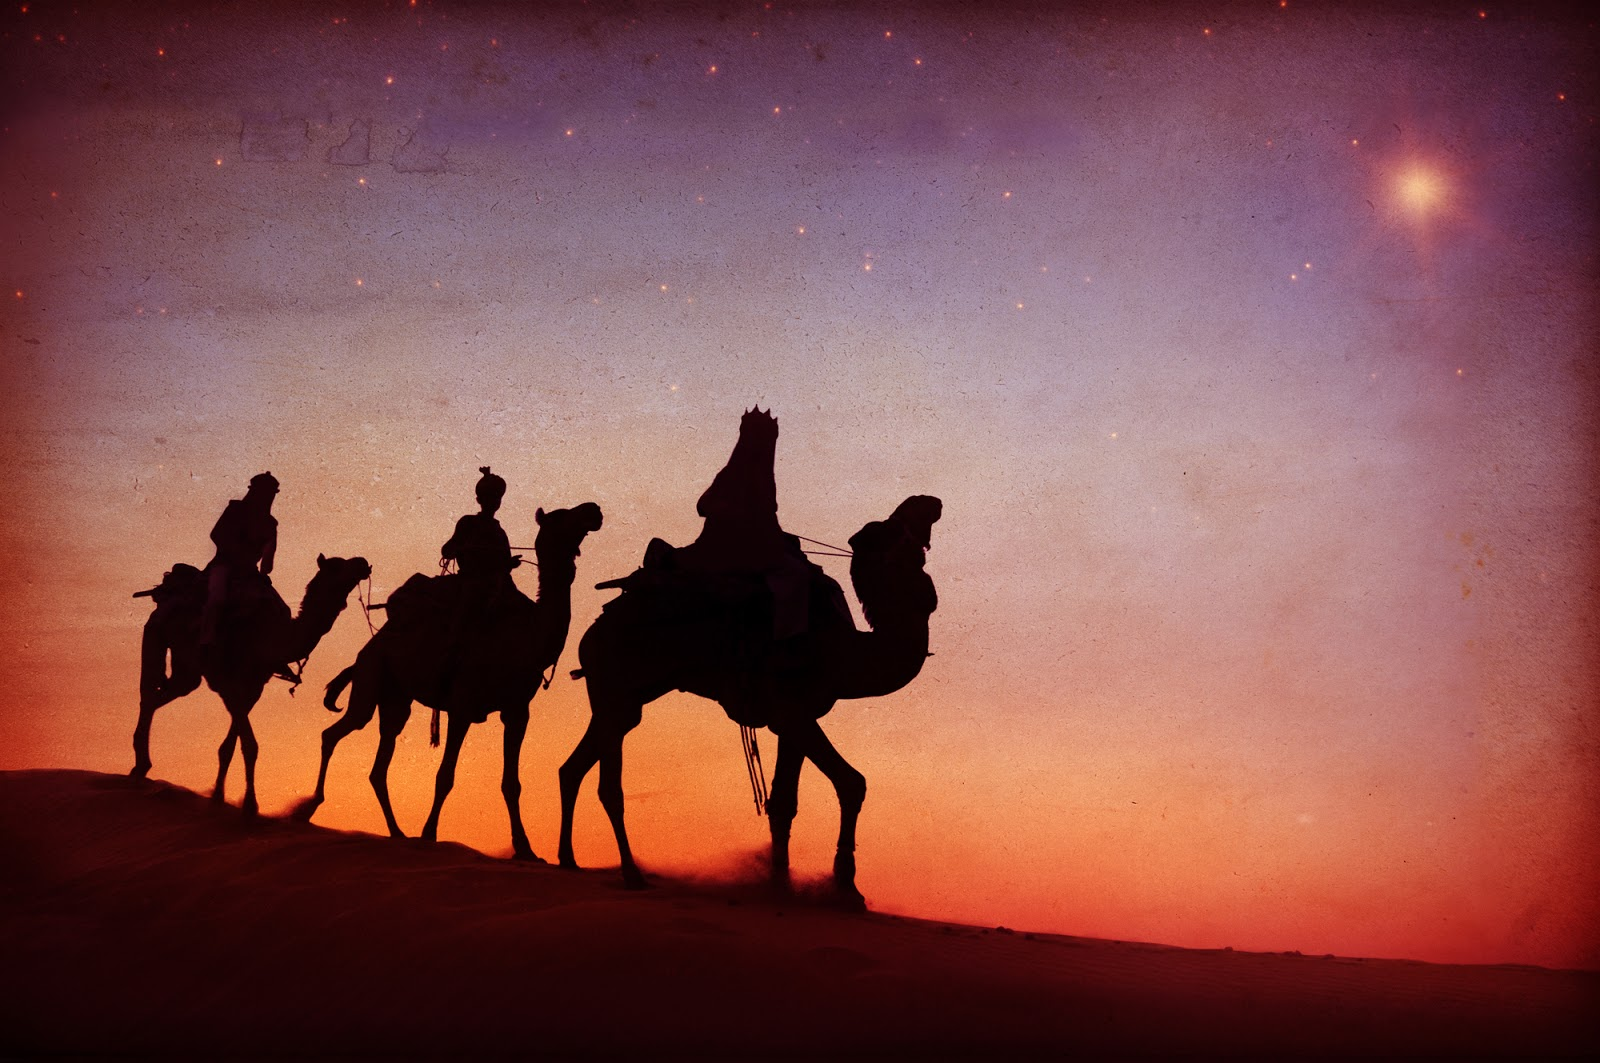 Three Kings' Day is a popular Latin American holiday that is ripe for international e-commerce sales.